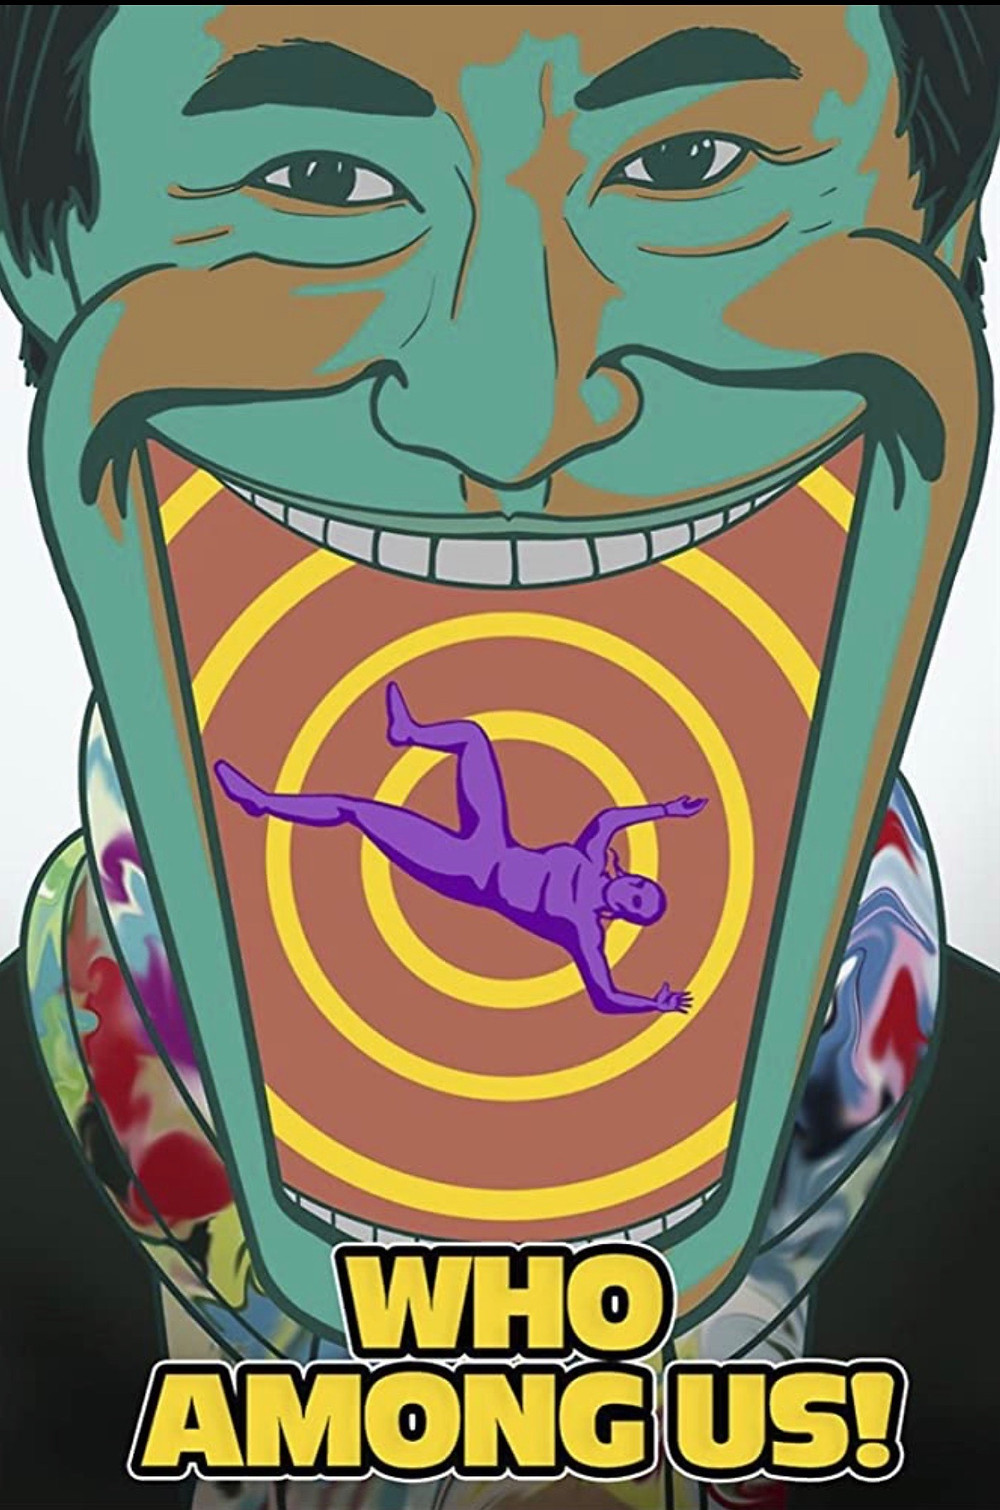 This image shows a cartoon style man with his mouth wide open, a smaller figure inside his mouth falling into what looks like a forever deepening swirl. The man cartoon man is coloured predominantly in green while the swirl is coloured both orange and yellow interchanging. The smaller figure falling into said swirl is solid purple in colour. The short film's title is written in simple, yellow, block letters at the bottom of the image.